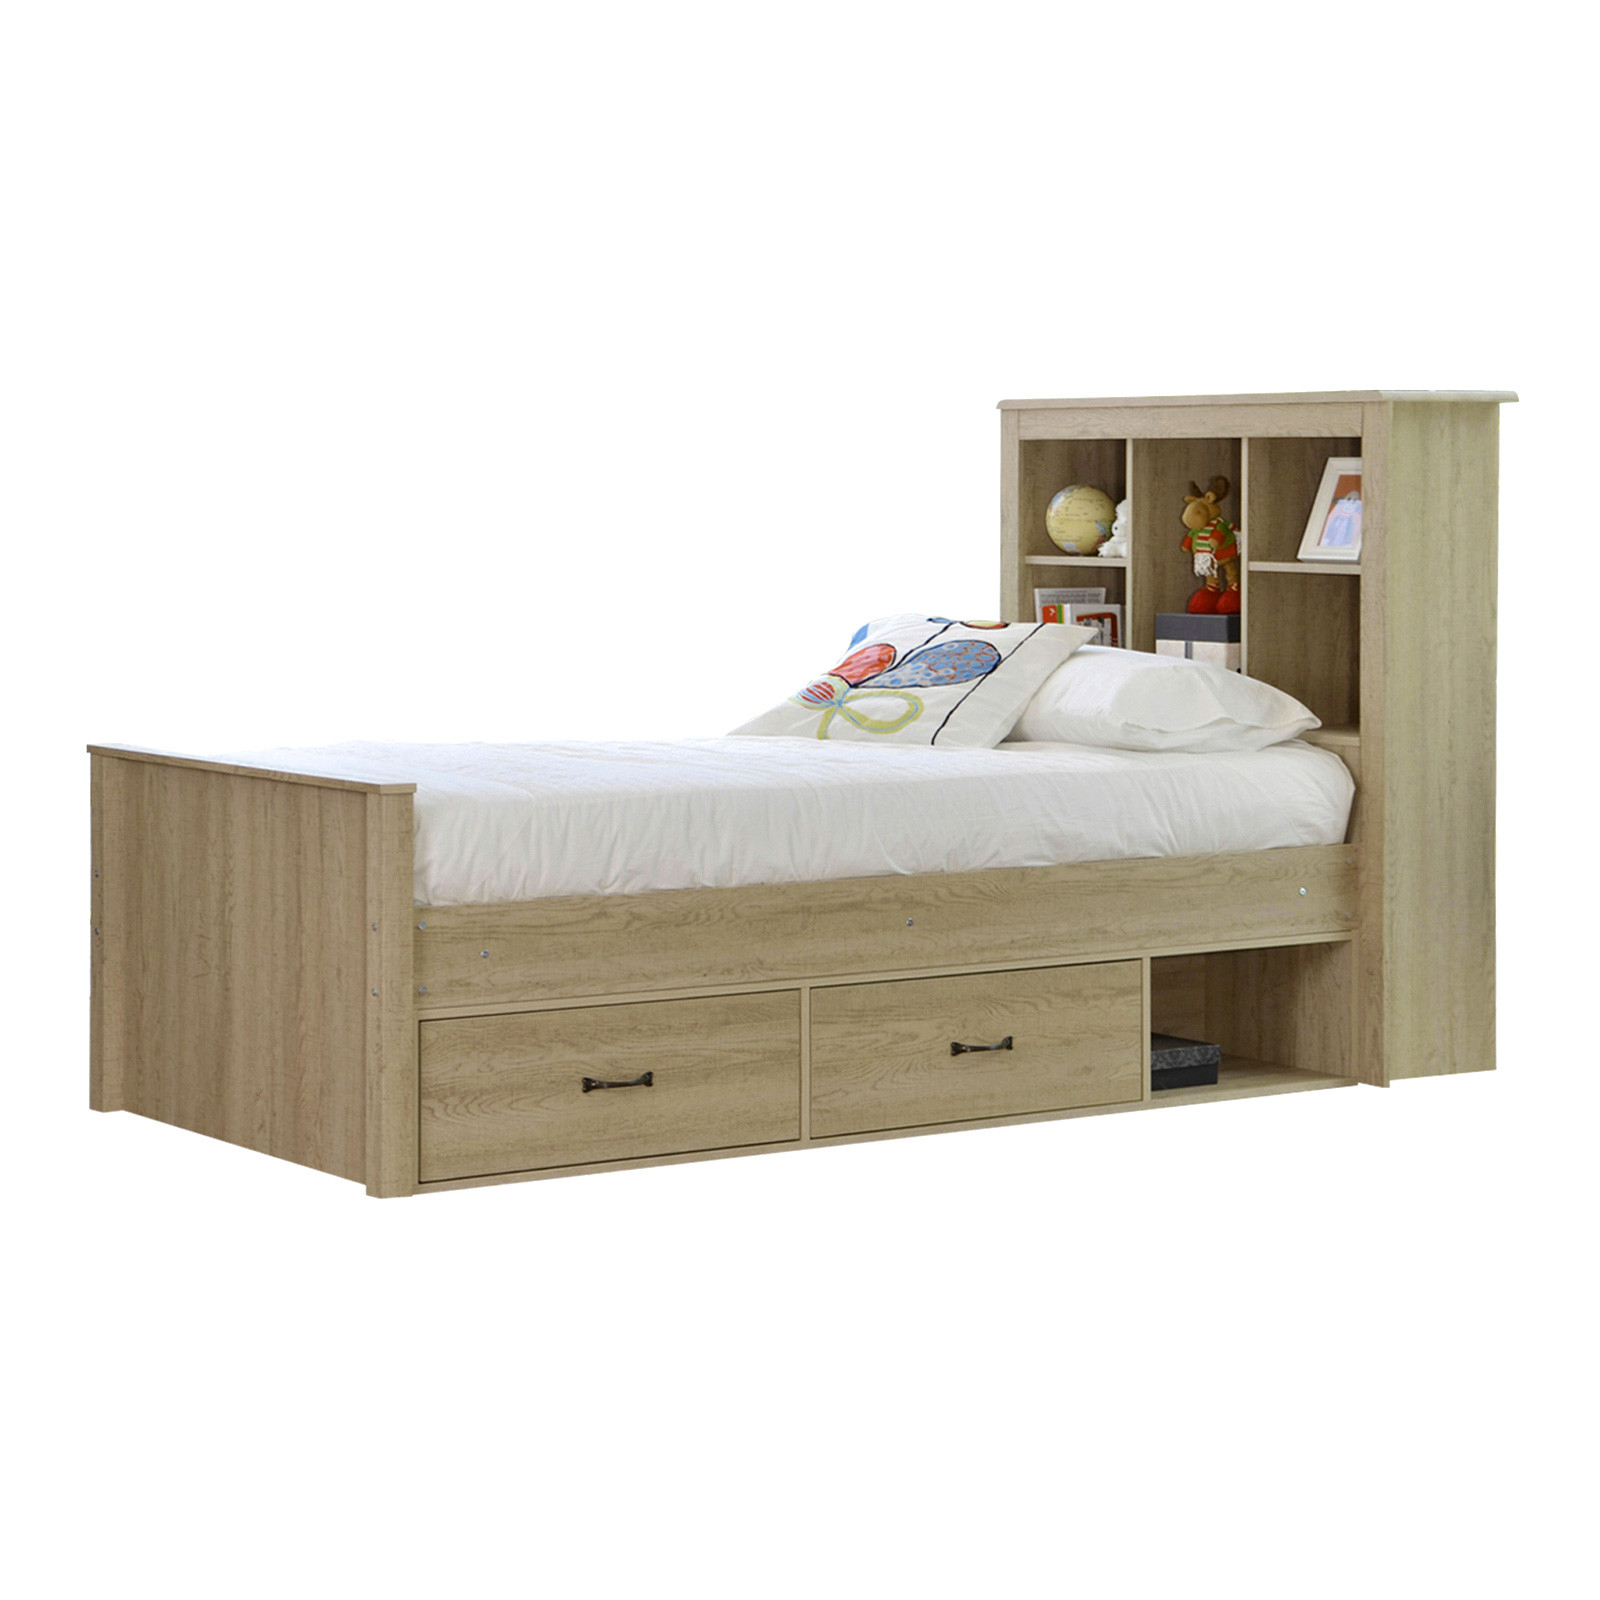 Jeppe Oak King Single Bed With Bookshelves Drawers